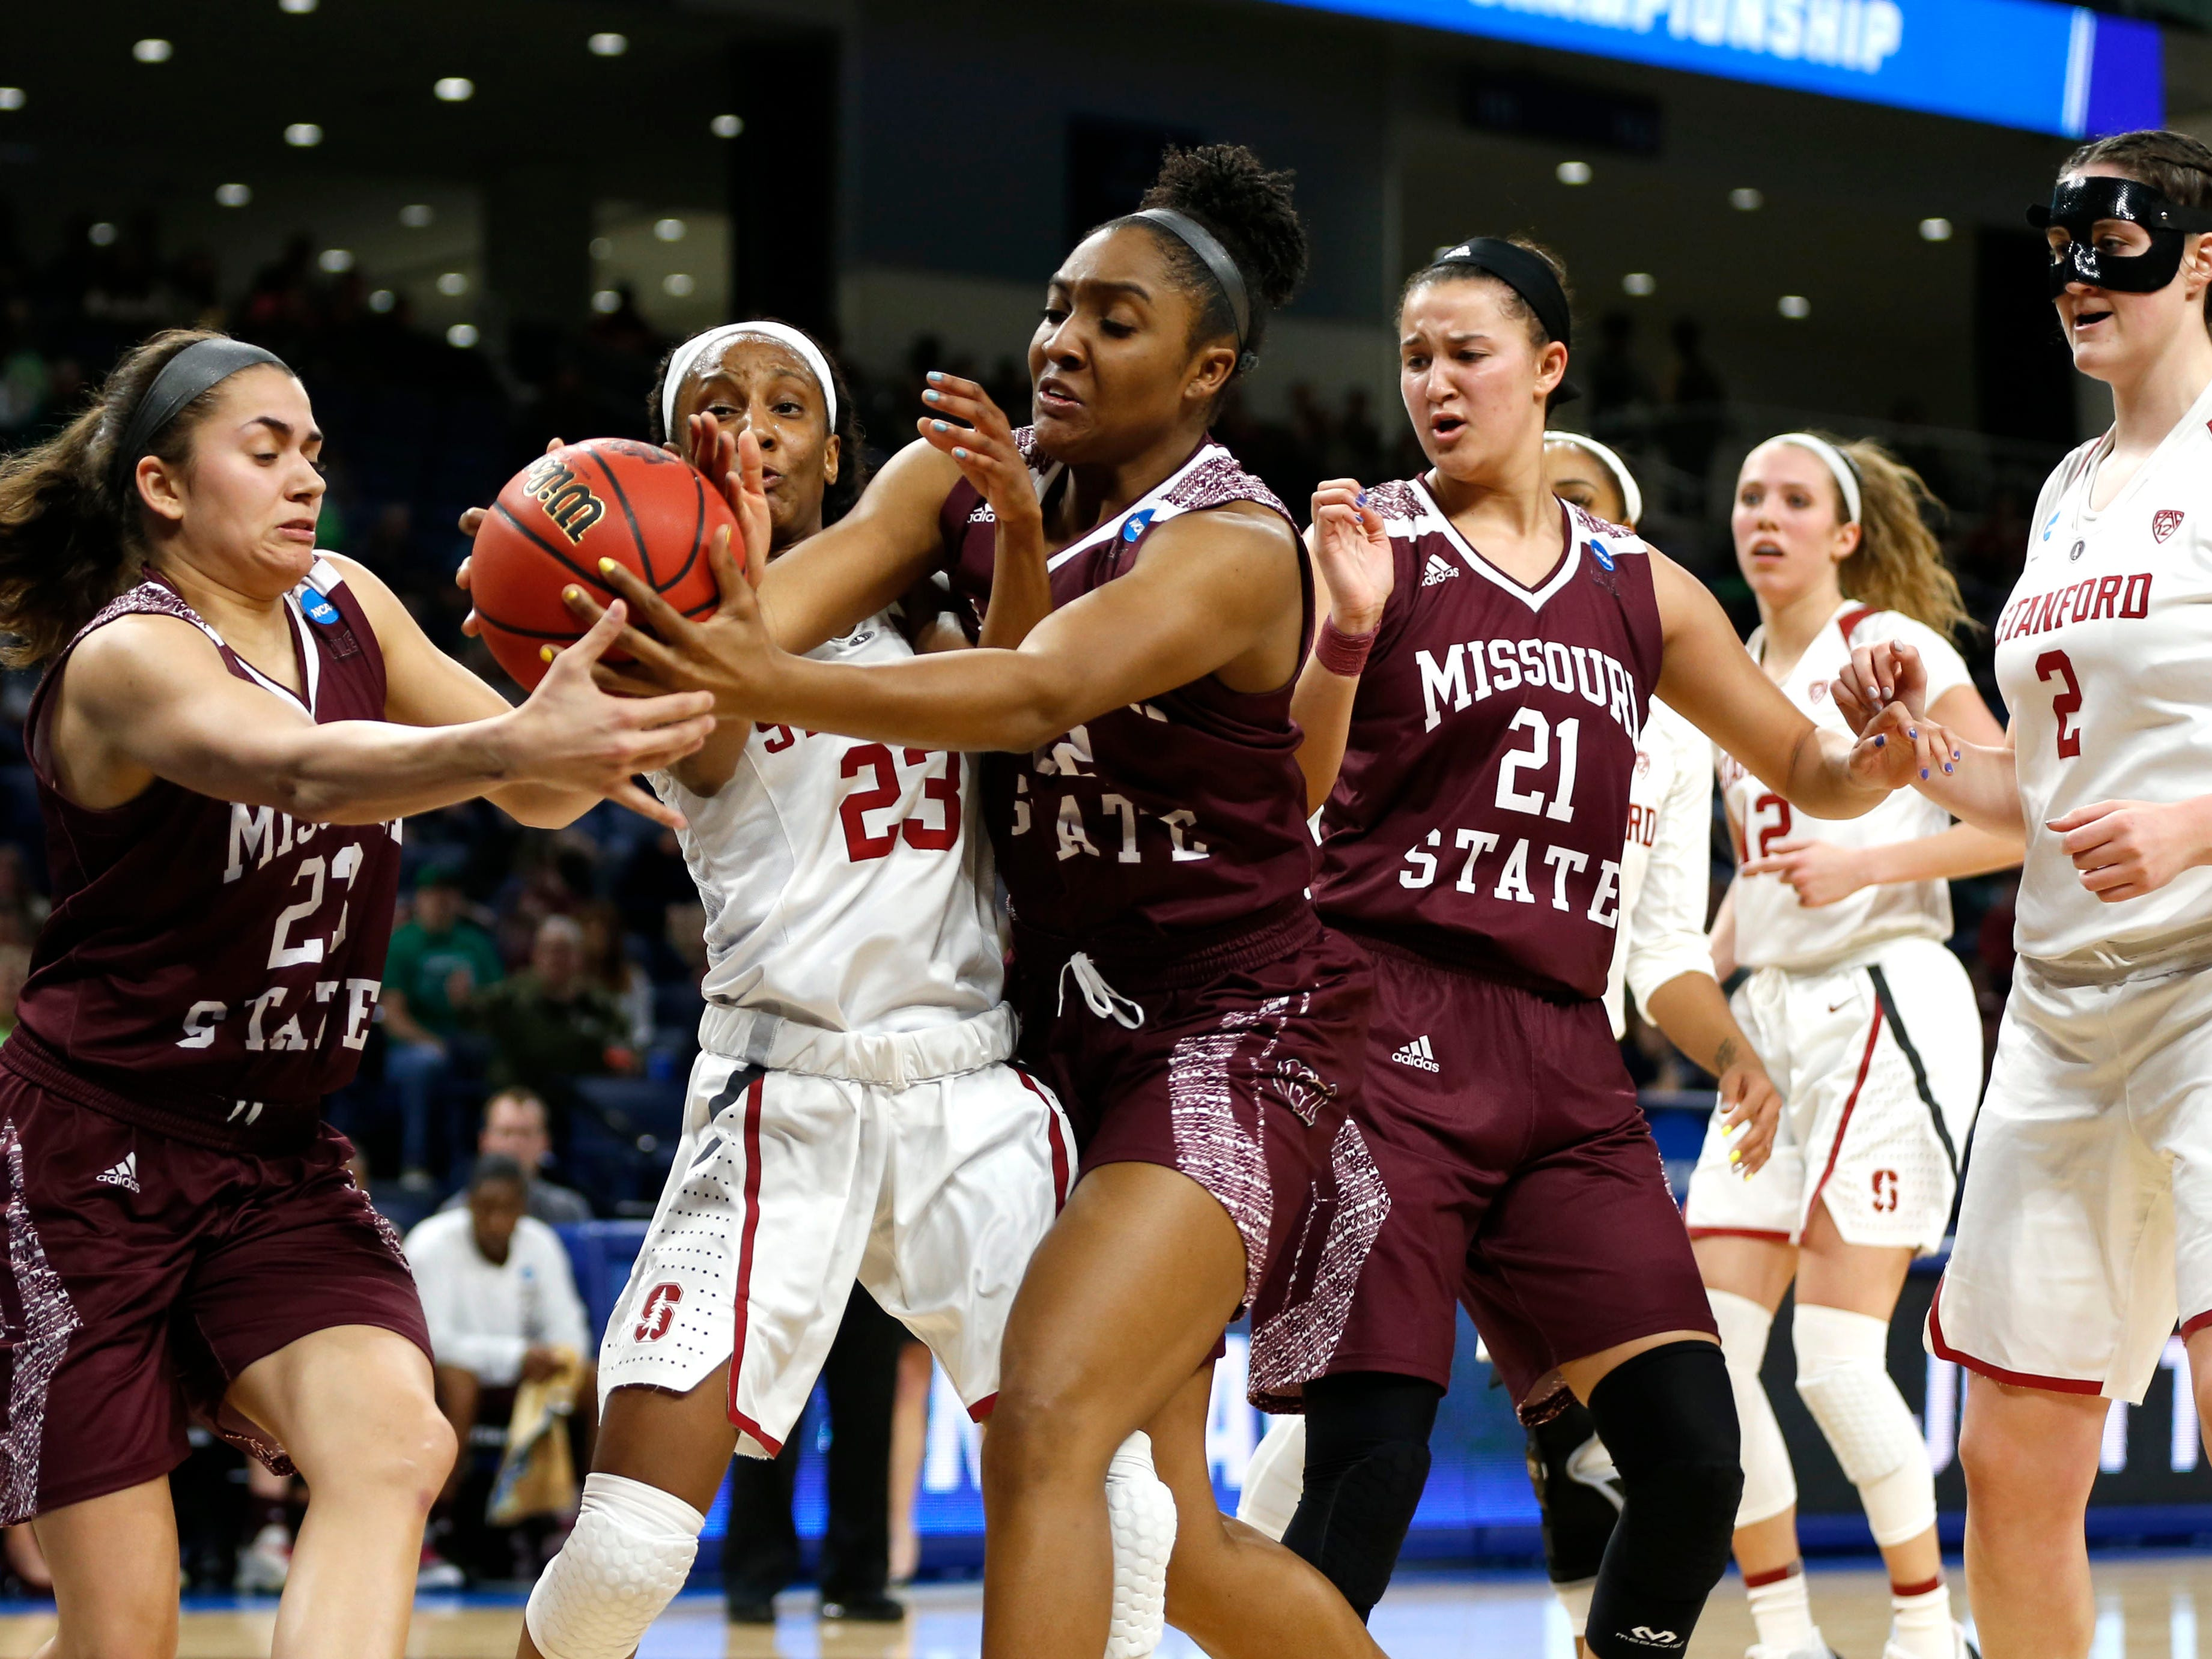 Missouri State's Jasmine Franklin (center) and Mya Bhinhar (left) fight for control of a ball with Stanford Cardinal Kiana Williams during the NCAA Division I Women's Regional at Wintrust Arena in Chicago, Ill. on Saturday, March 30, 2019.